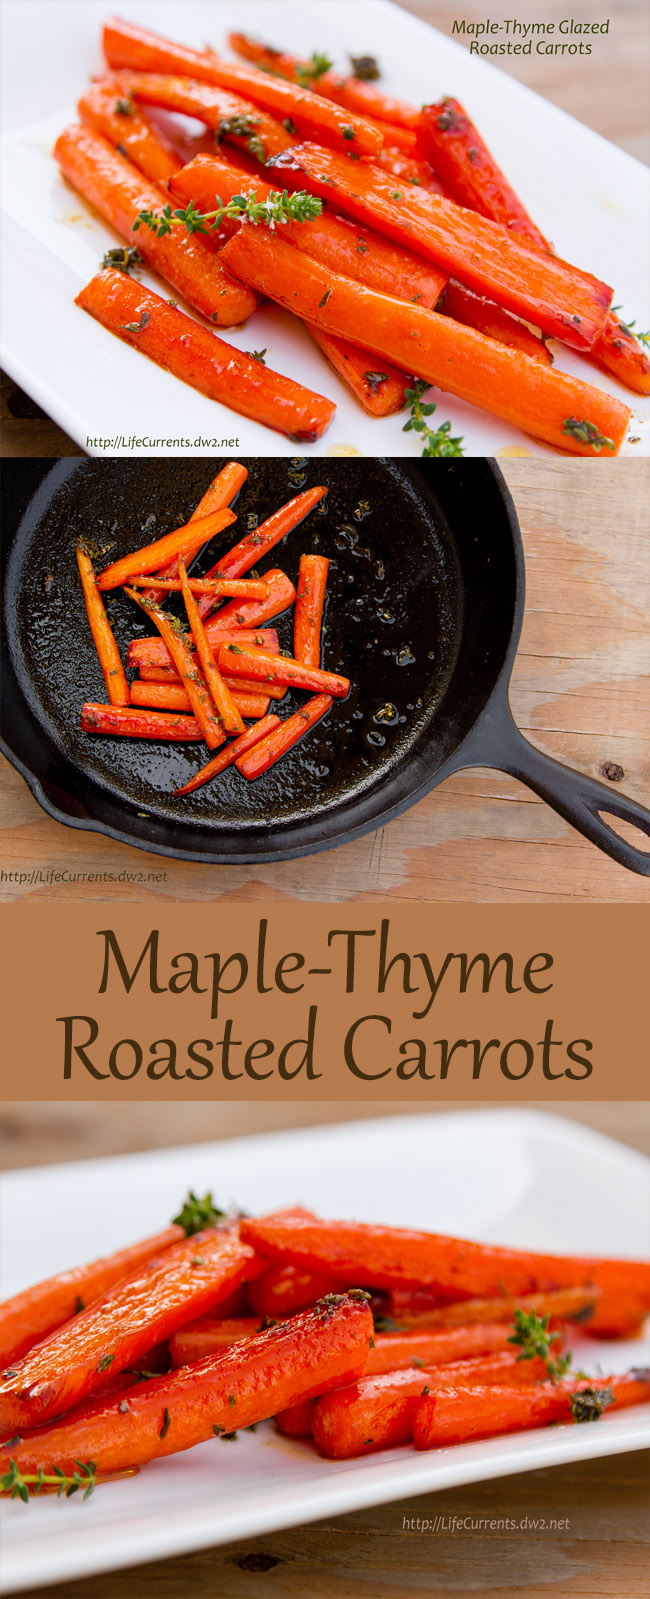 A yummy and simple side dish of Maple-Thyme Roasted Carrots